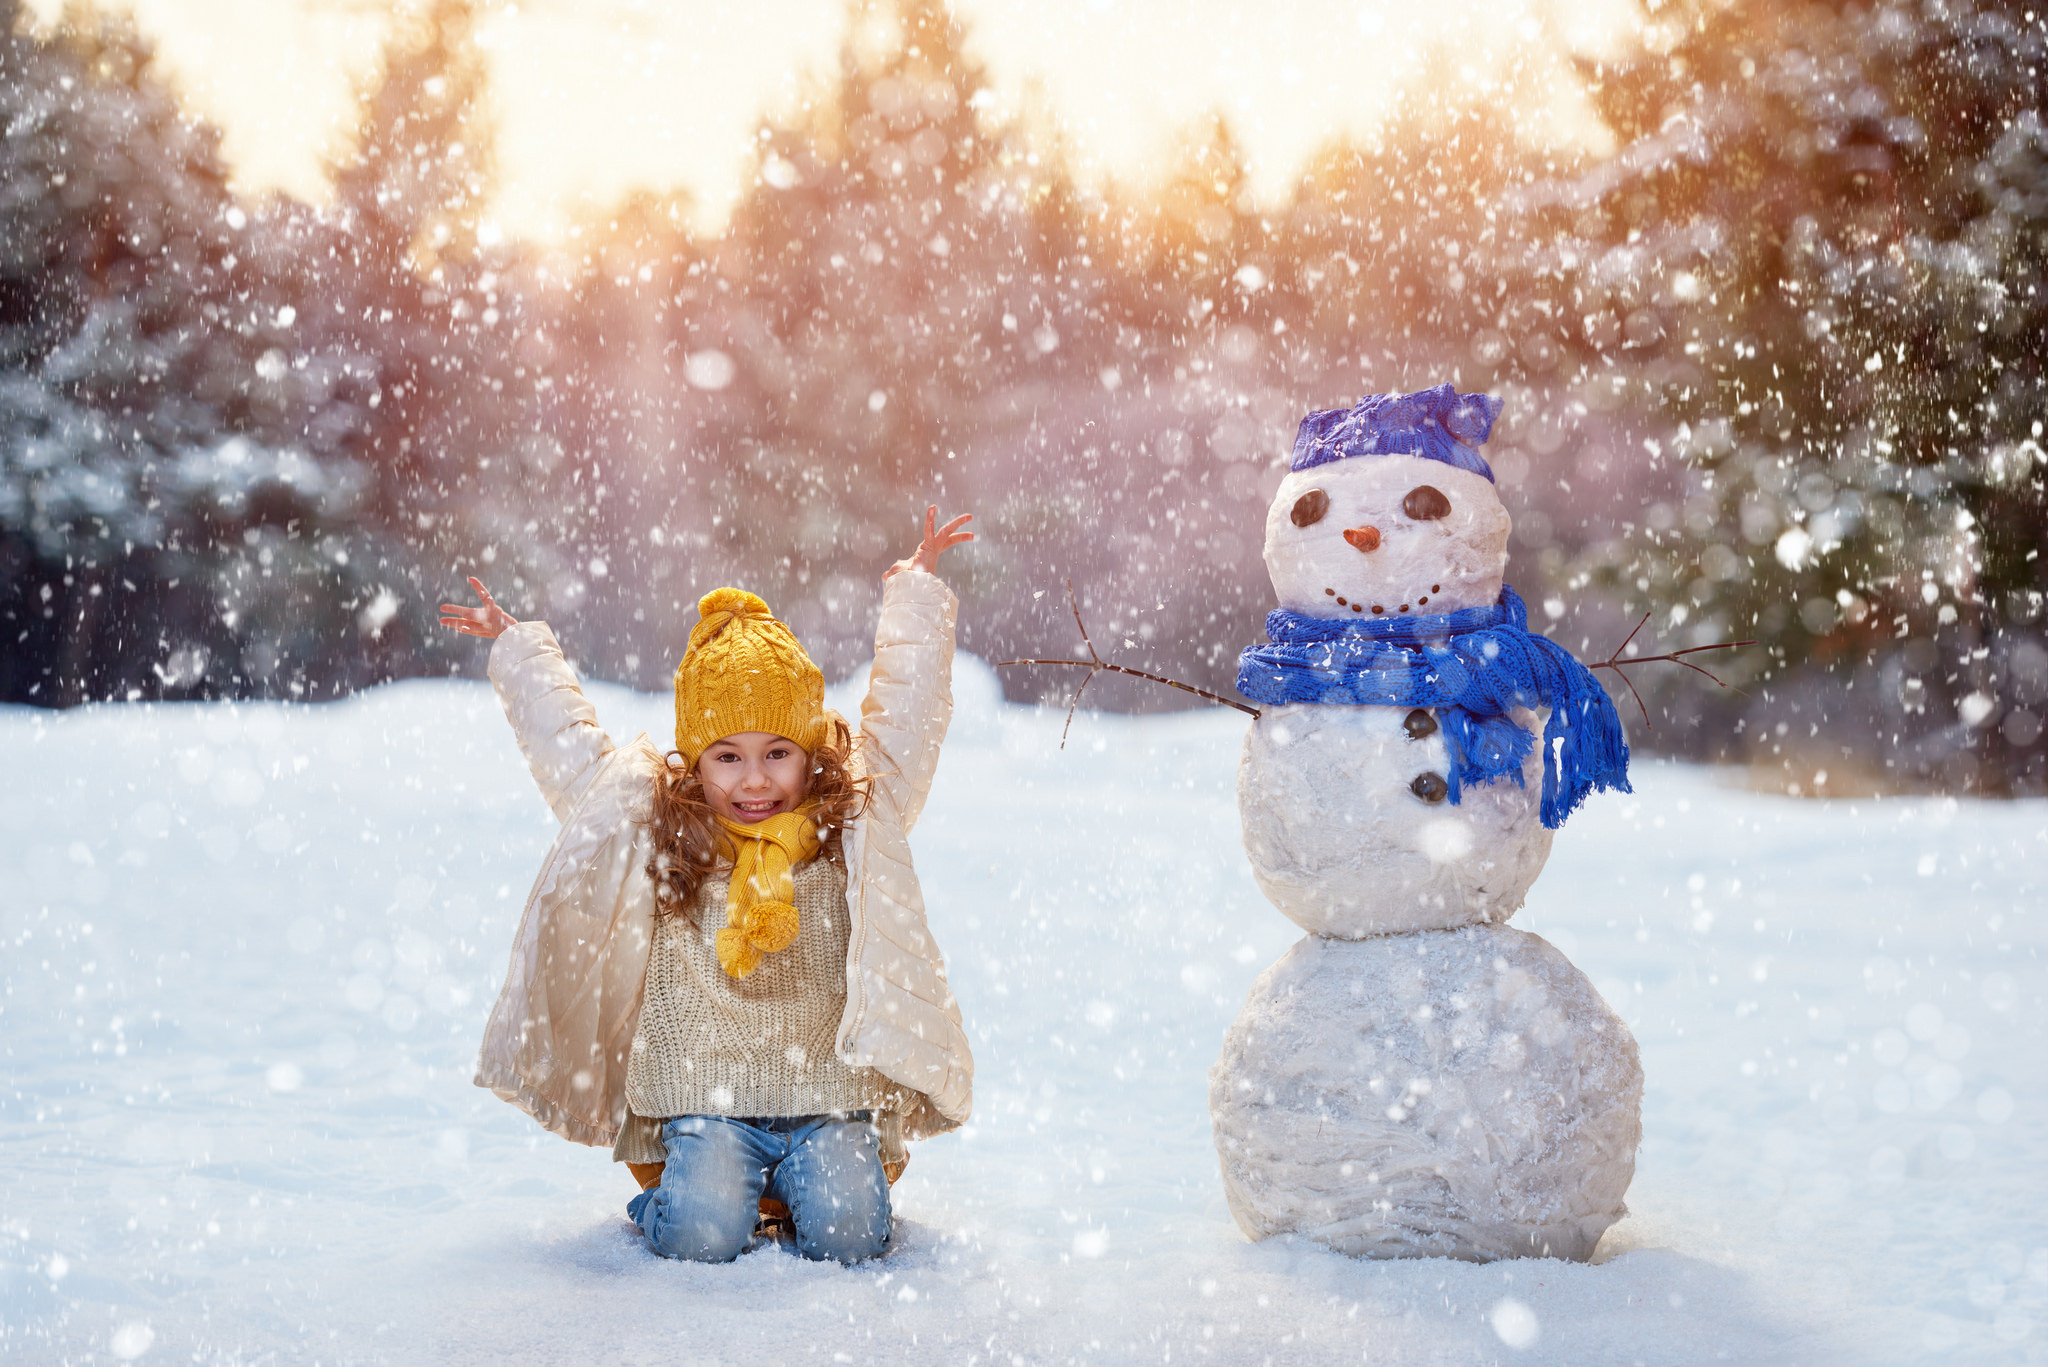 Girl Playing With Snowman | Festivities Abound: The Best Holiday Events near Falls Church | West Broad